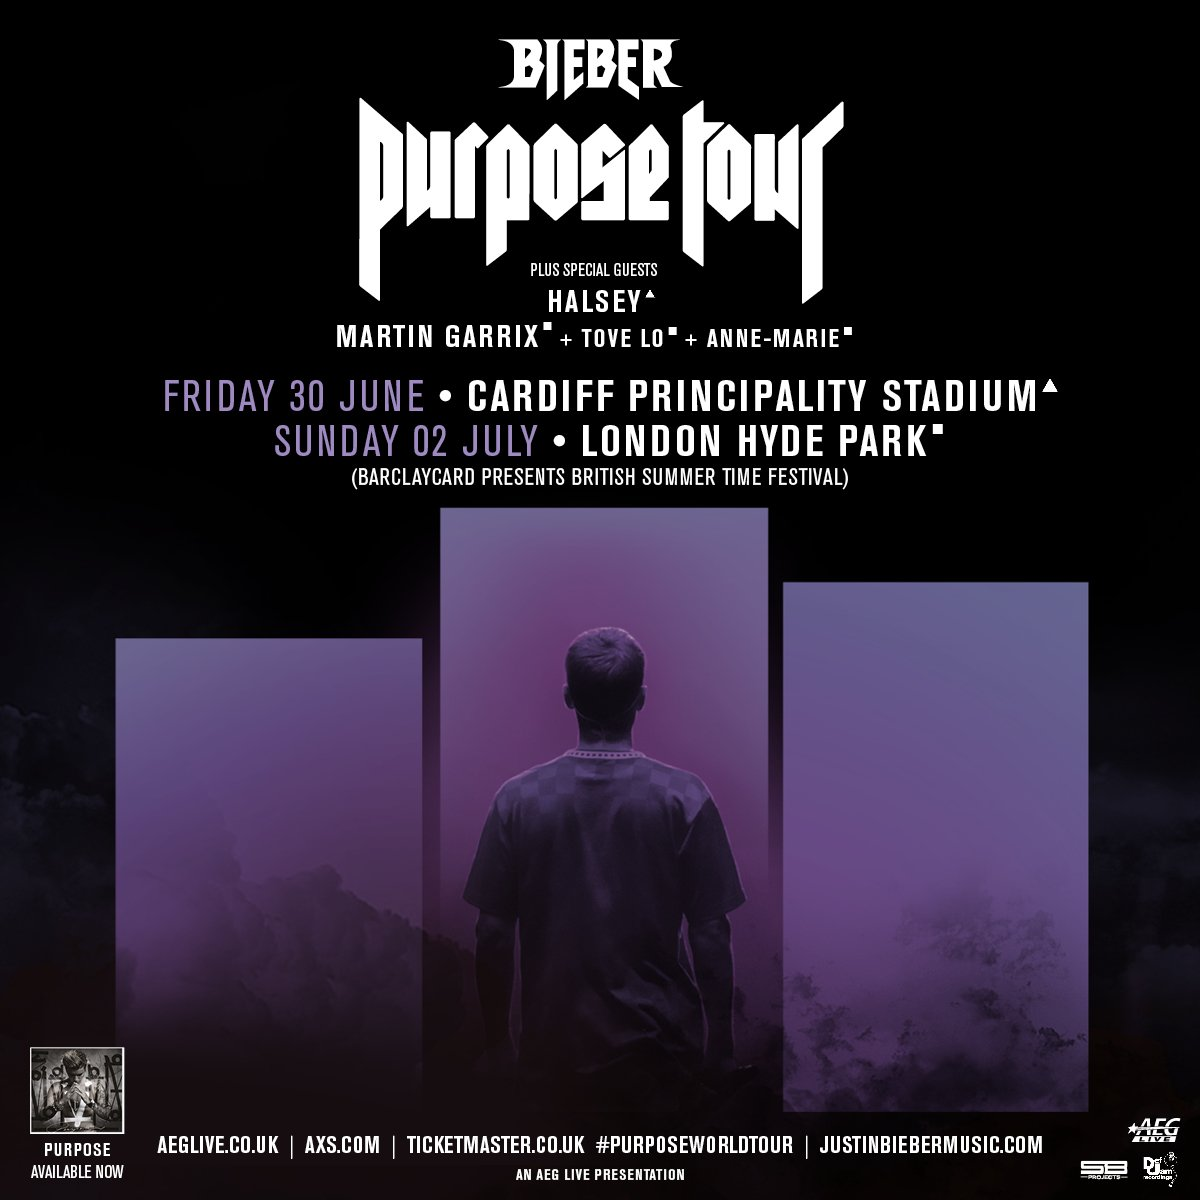 UK. Bringing #PurposeTour next summer to Cardiff and London https://t.co/vBknuqb076 https://t.co/FnqmtoZ5hK